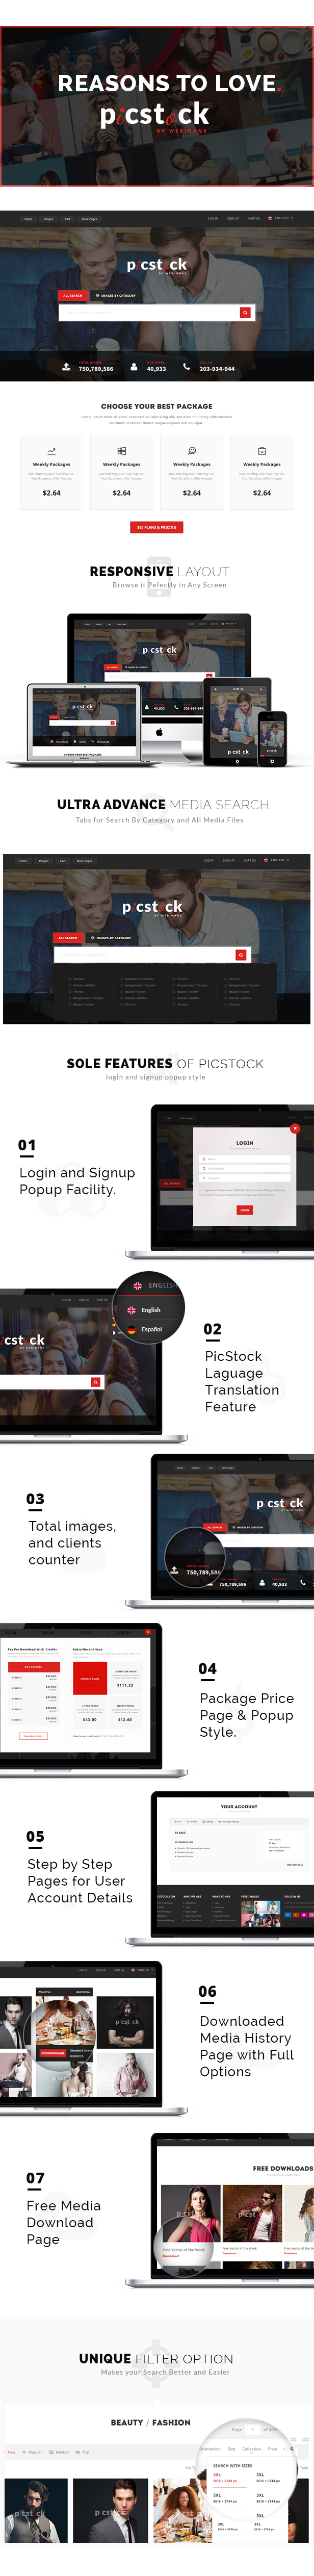 PicStock- Ultra Advanced Stock Media HTML Template by webinaneHTML